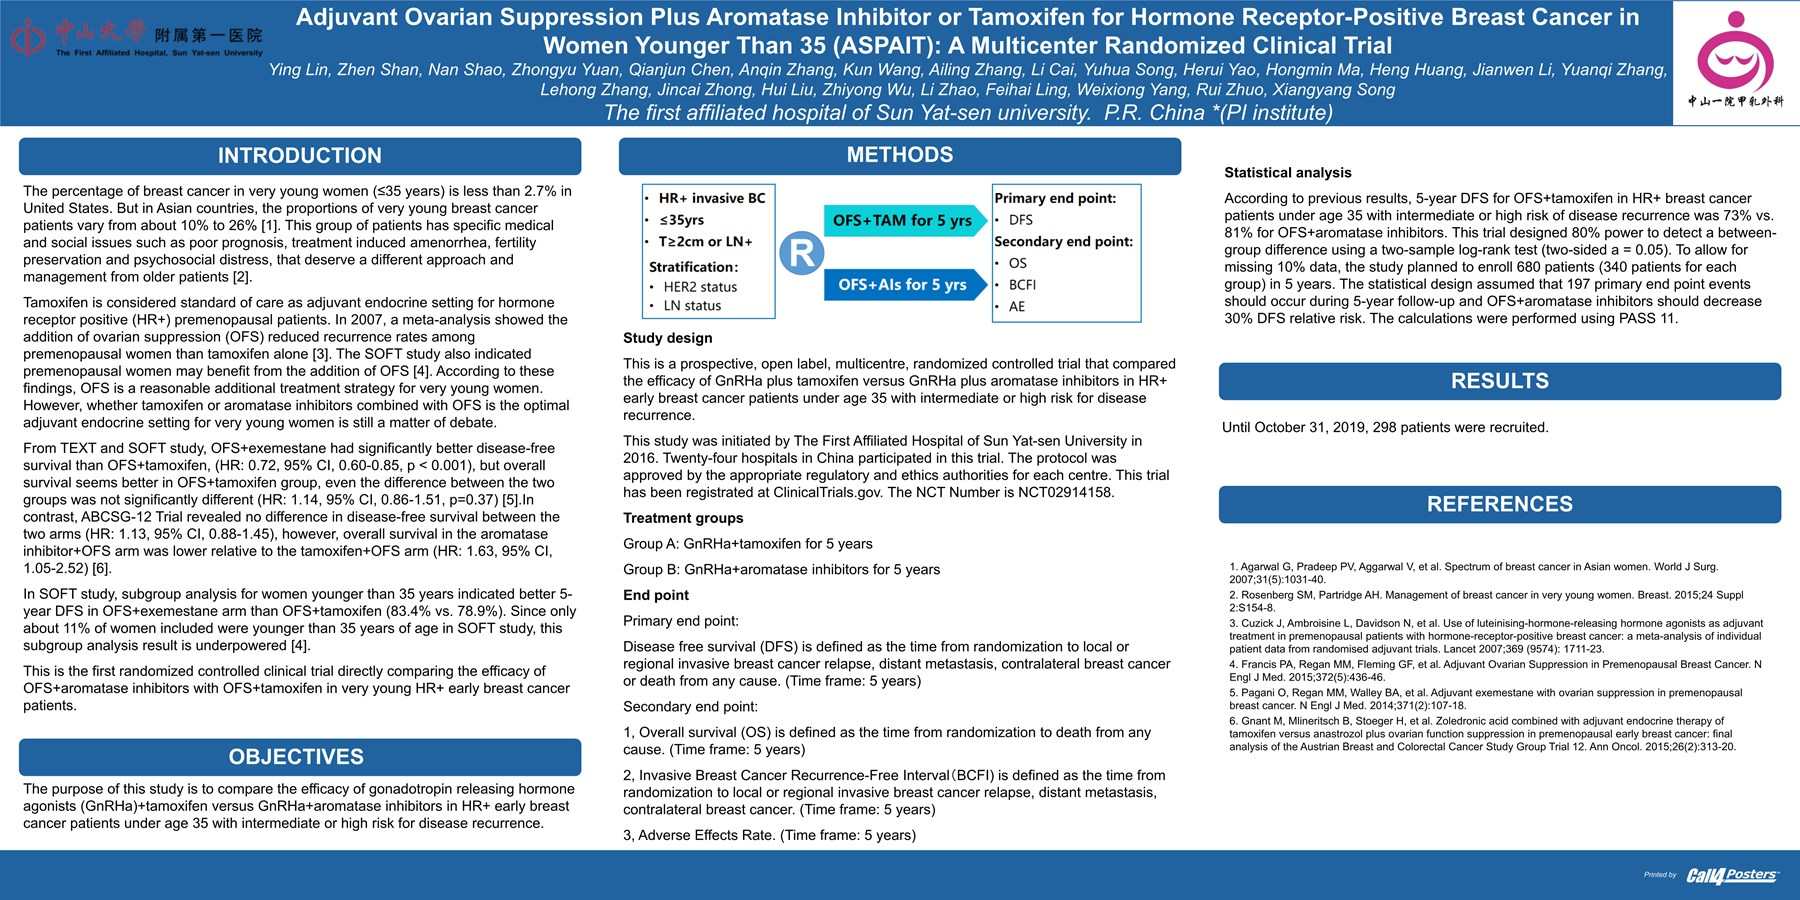 Adjuvant Ovarian Suppression Plus Aromatase Inhibitor or Tamoxifen for Hormone Receptor-Positive Breast Cancer in Women Younger Than 35 (ASPAIT): A Multicenter Randomized Clinical Trial